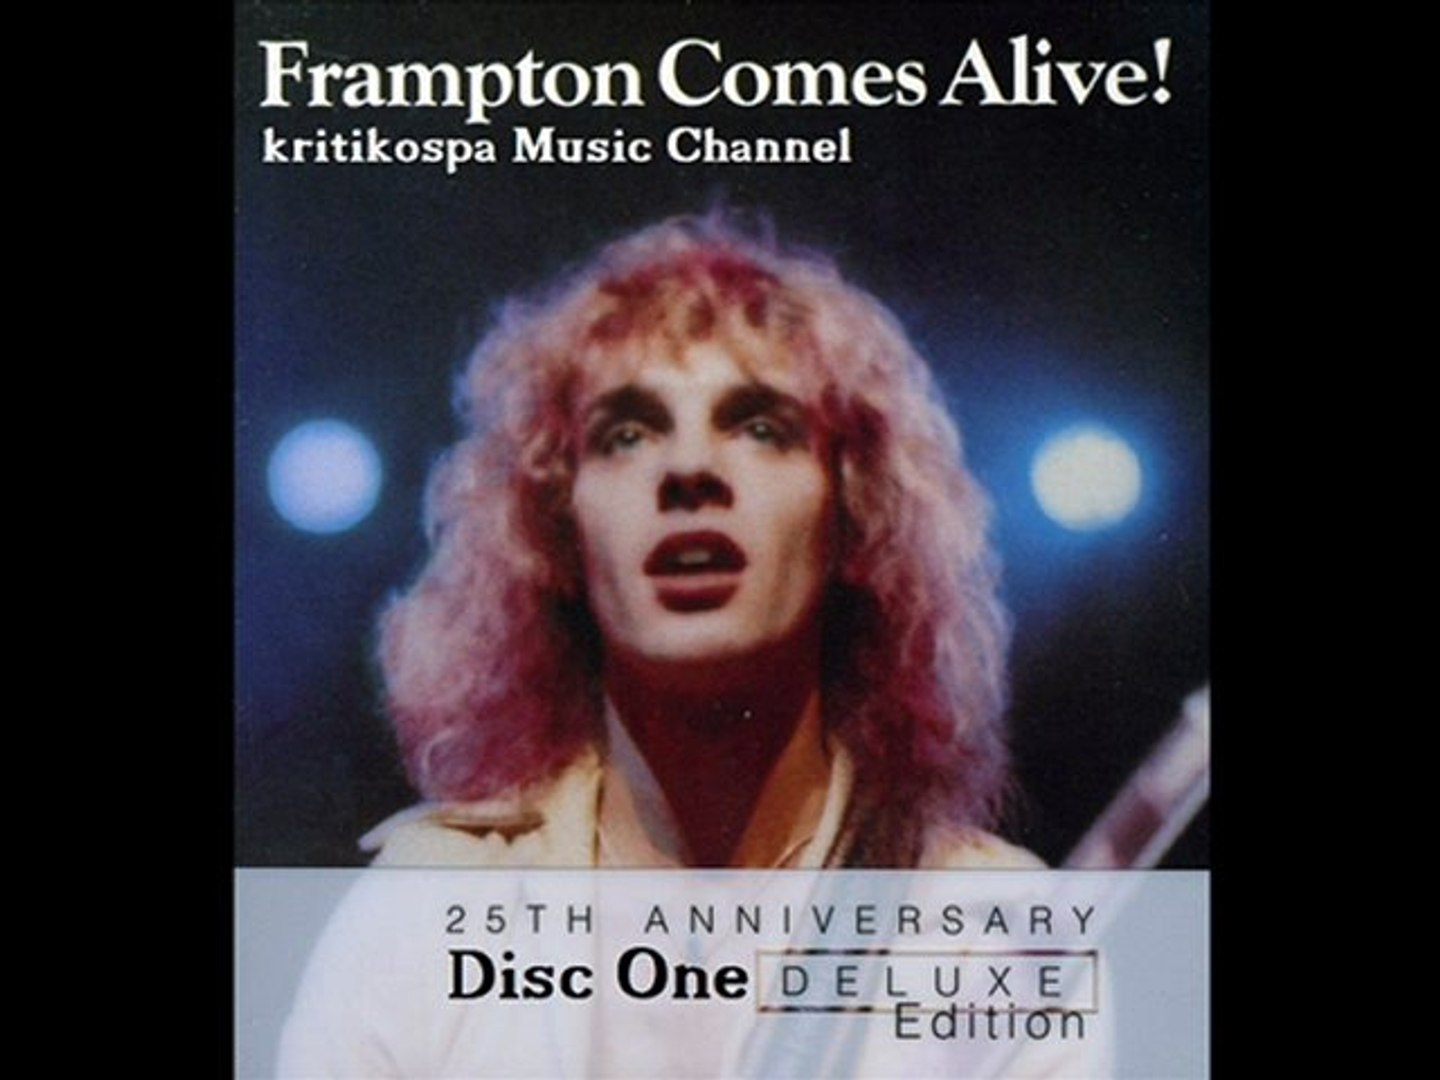 Peter Frampton - Frampton Comes Alive! (1976) 25th Anniversary Deluxe  Edition Disc One